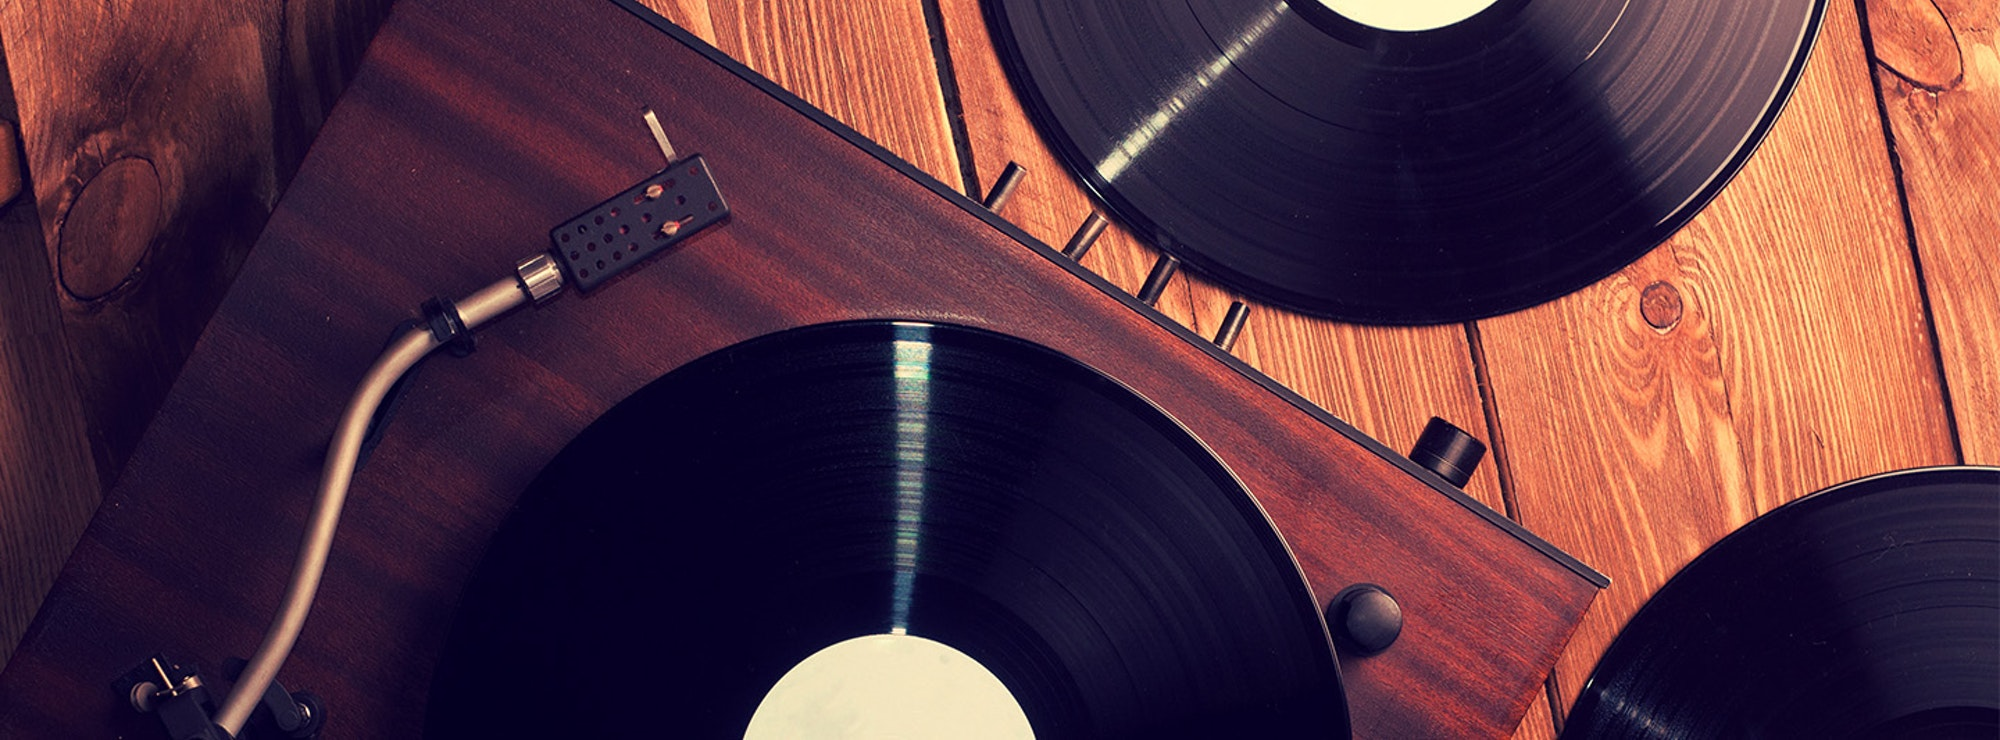 Top view of turntable and records